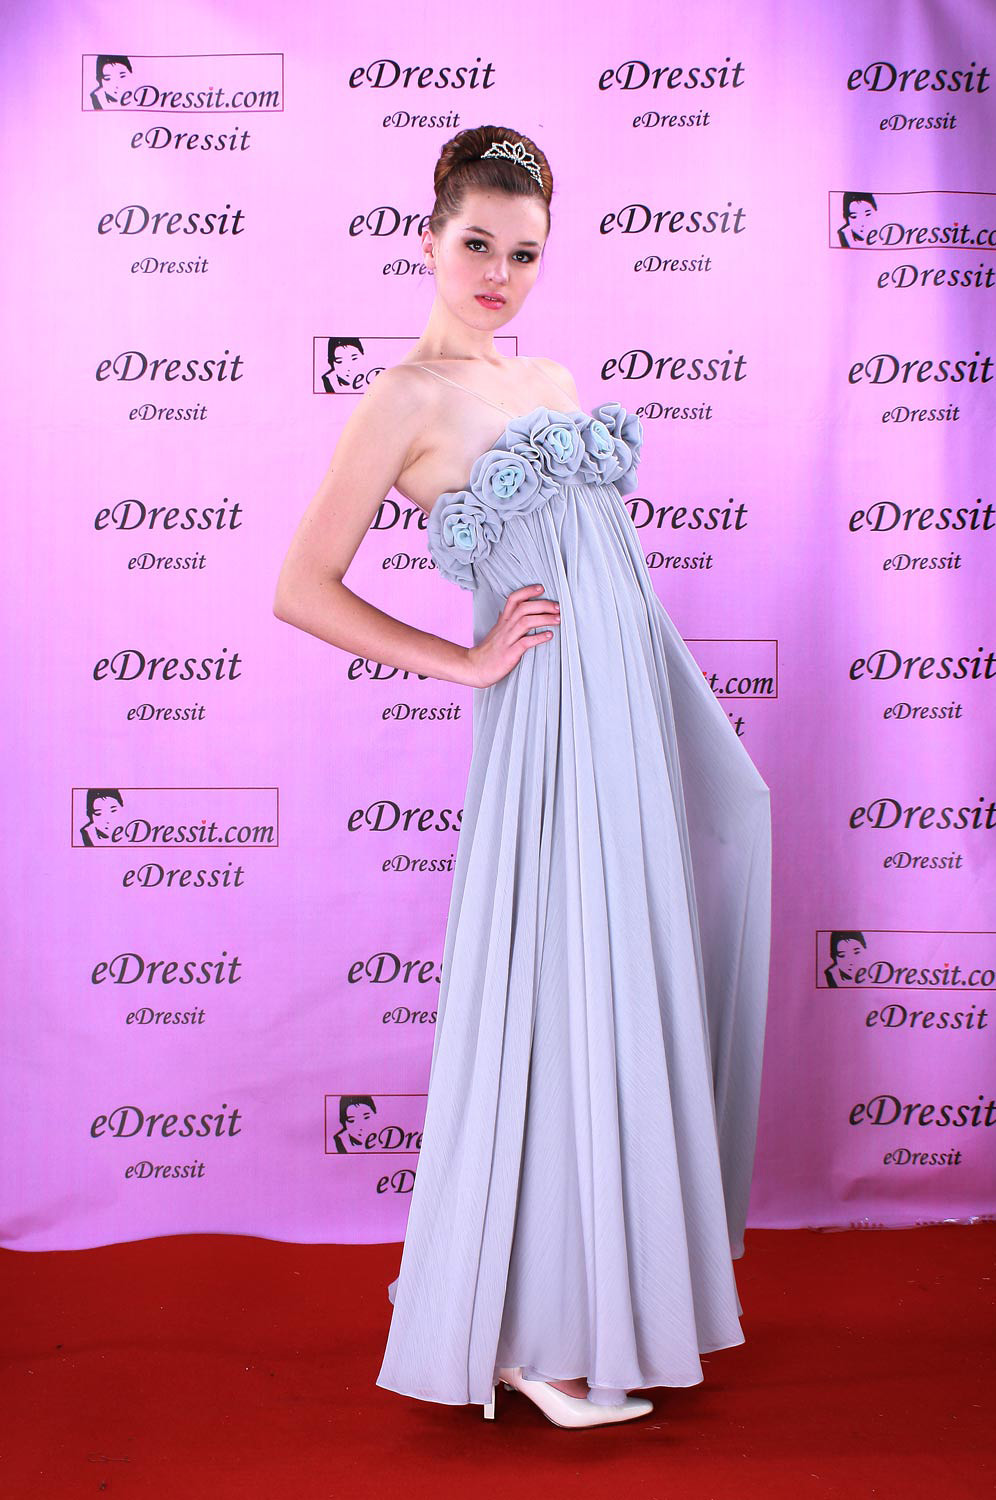 On sale !! eDressit Celebrity Sexy Prom Gown Evening Dress (00083735g)